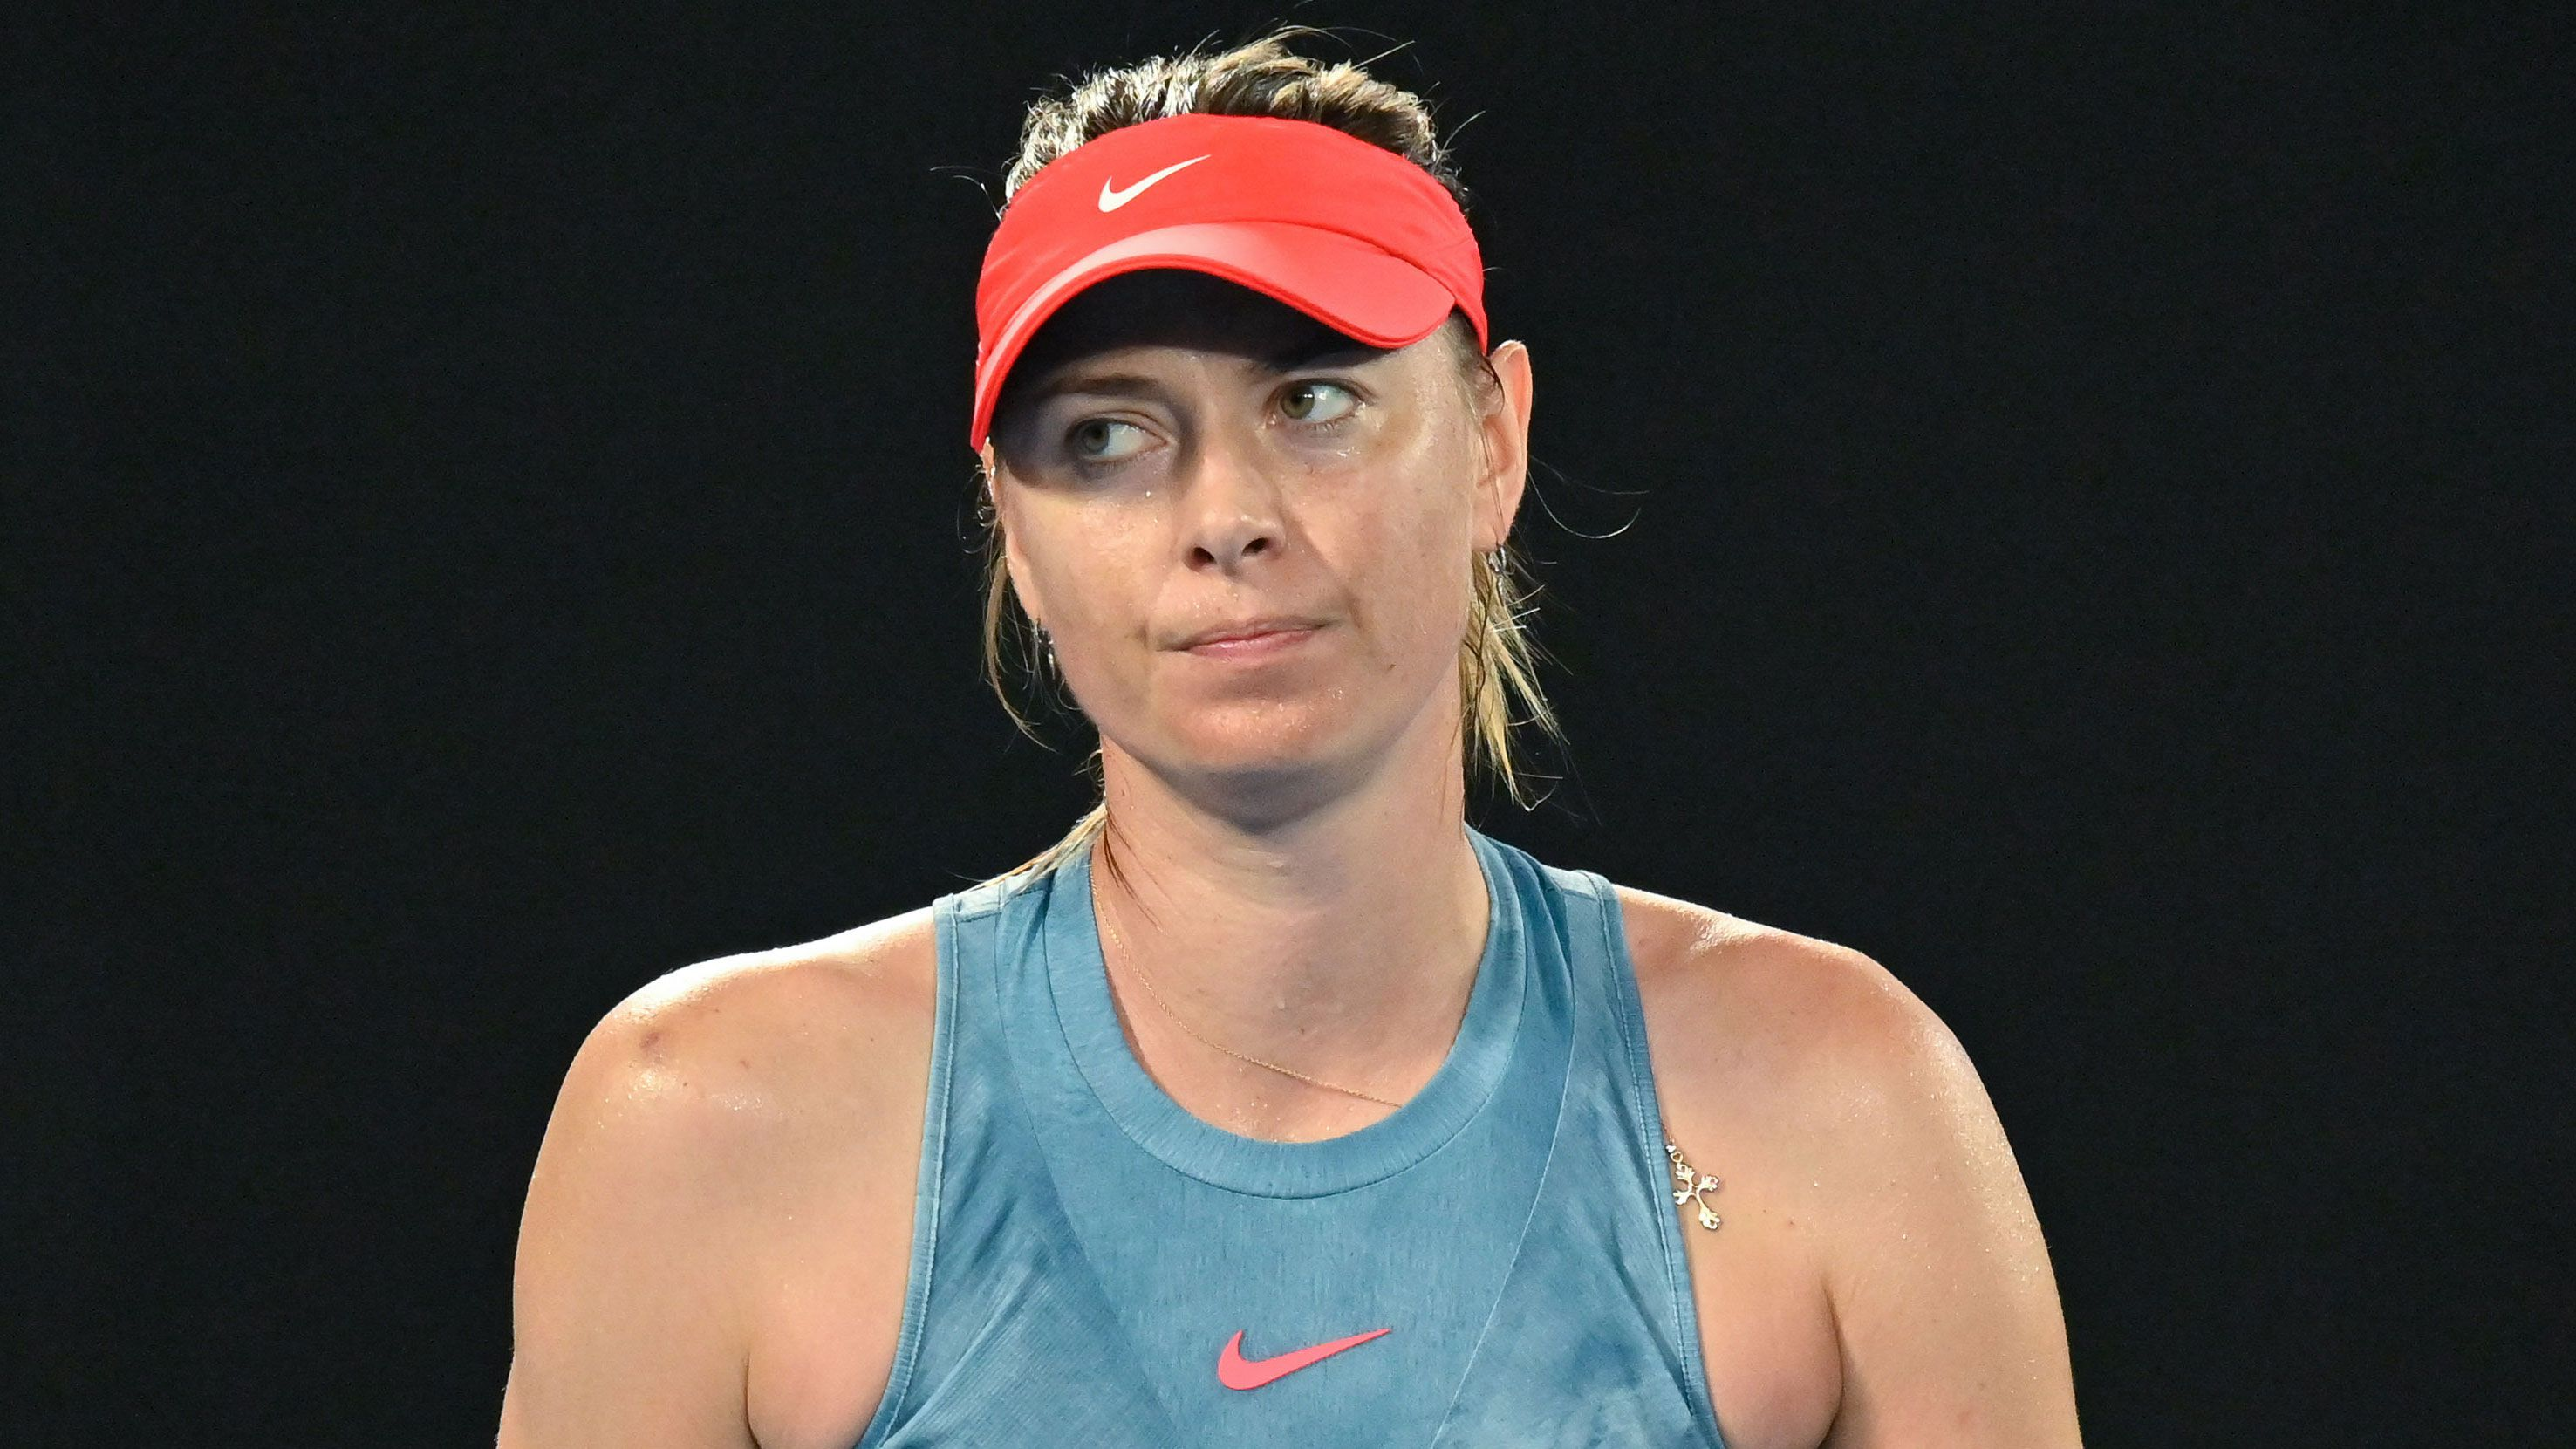 The back story to Maria Sharapova's struggle in return to tennis from doping ban